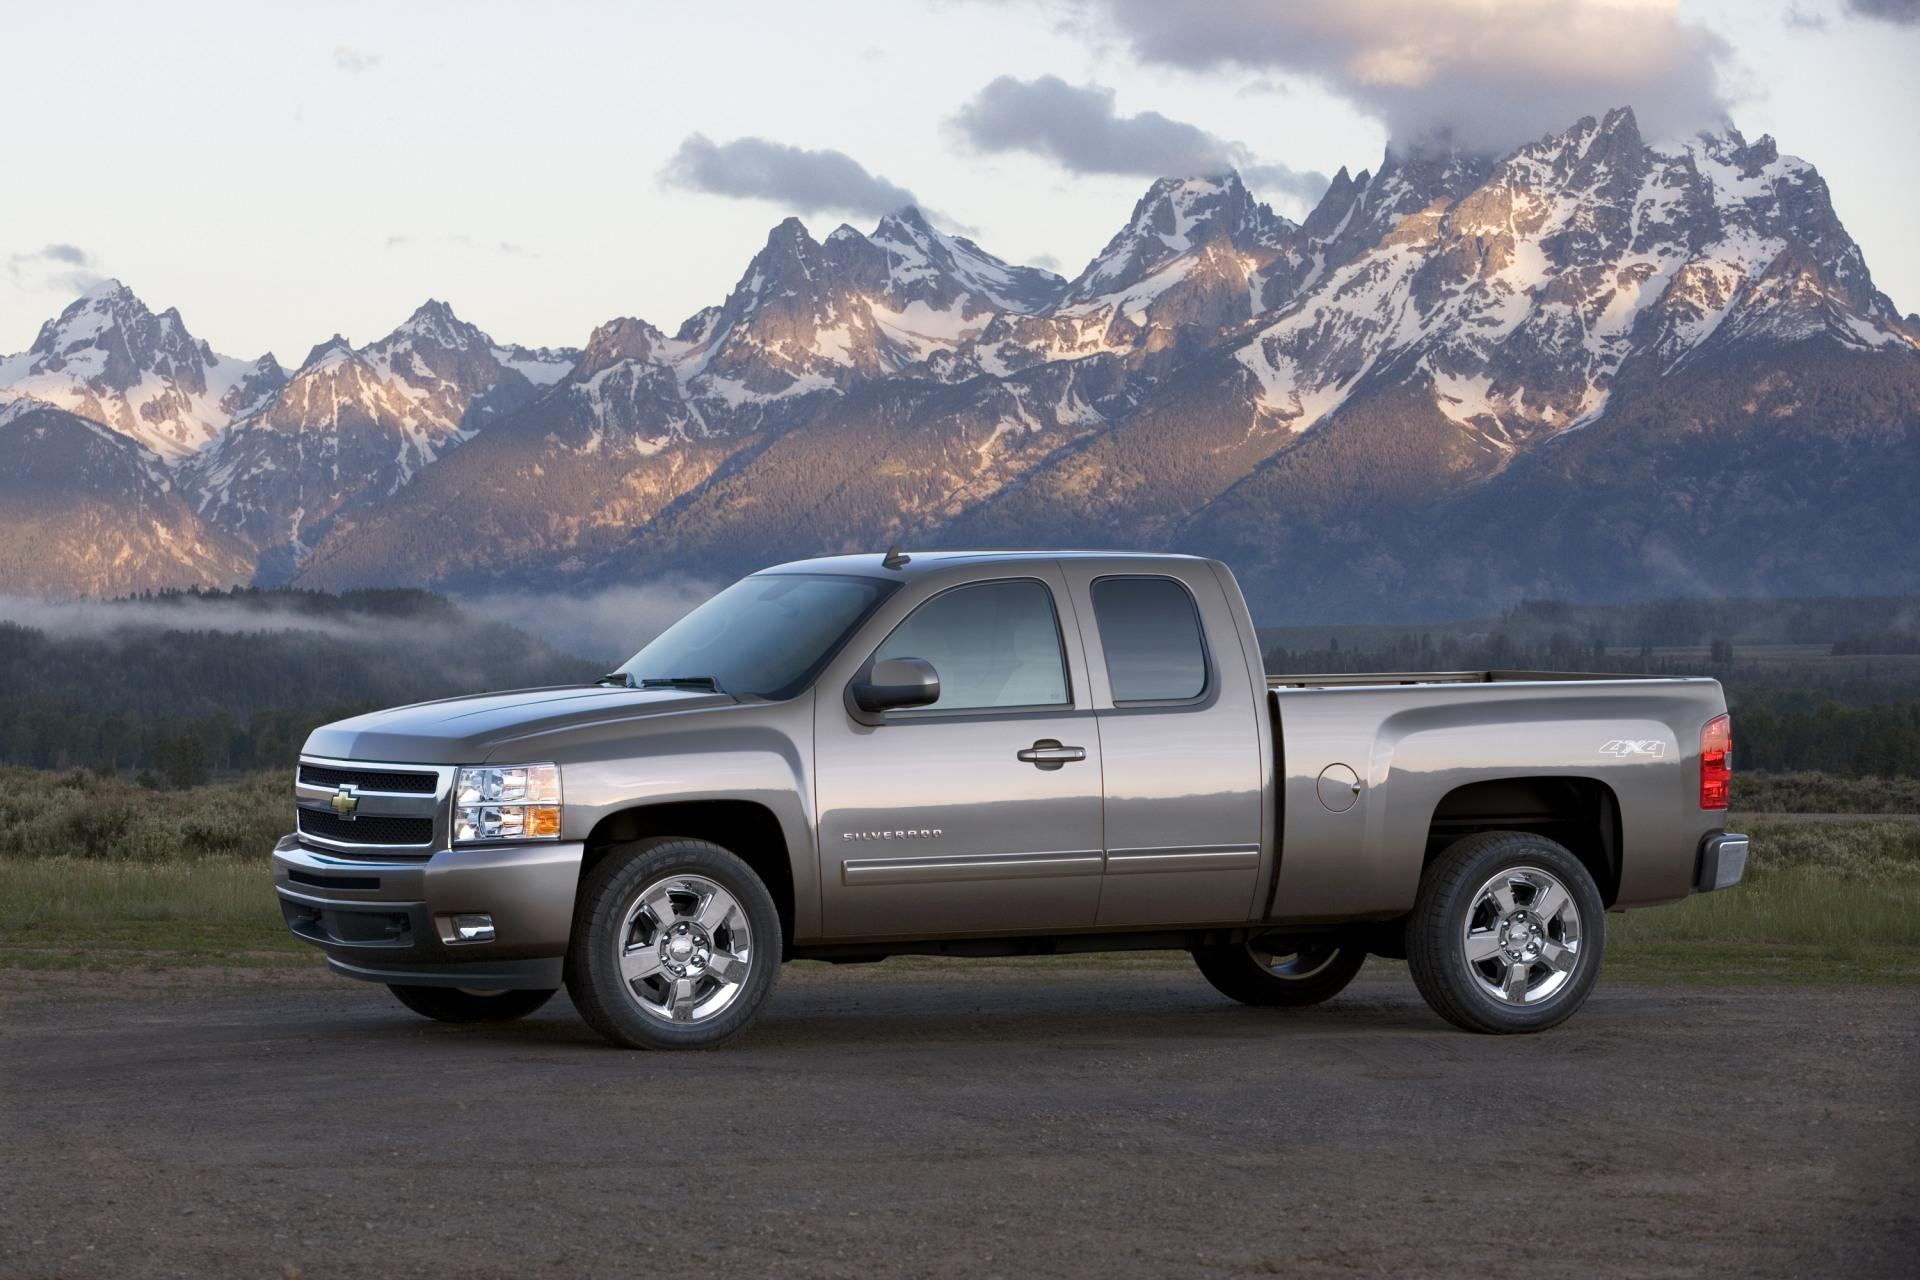 2011-Chevrolet-Silverado-Image-01 Great Description About 2011 Chevy Aveo Recalls with Captivating Images Cars Review